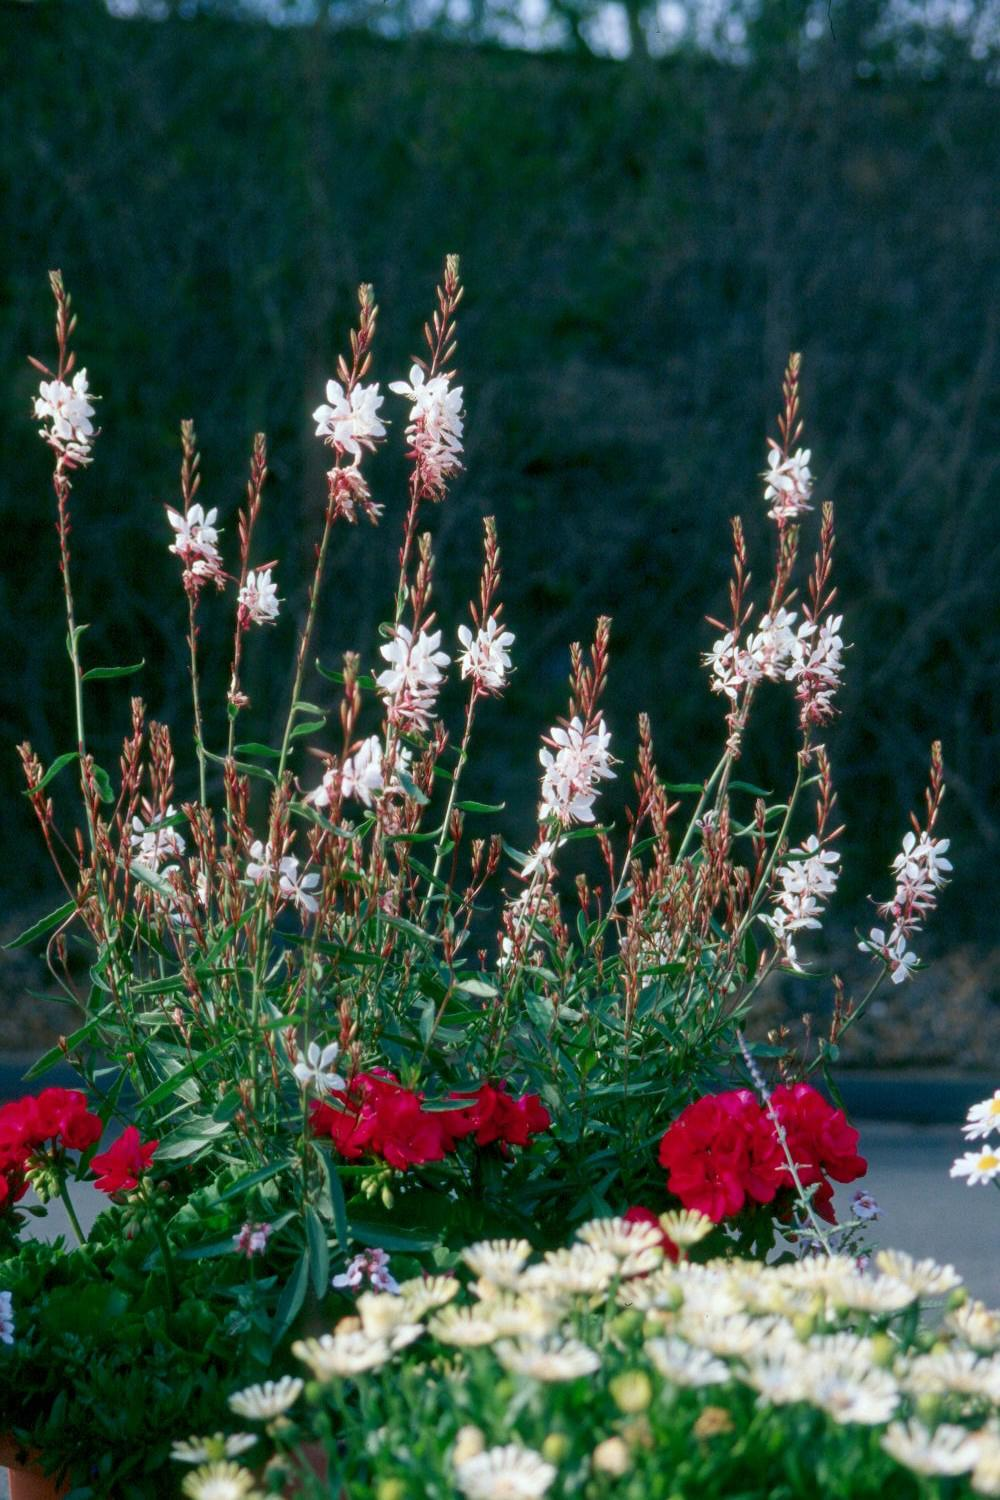 Gaura ranks among the souths hottest plants mississippi state the tall airy looking flowers of the gaura give the appearance of butterflies floating mightylinksfo